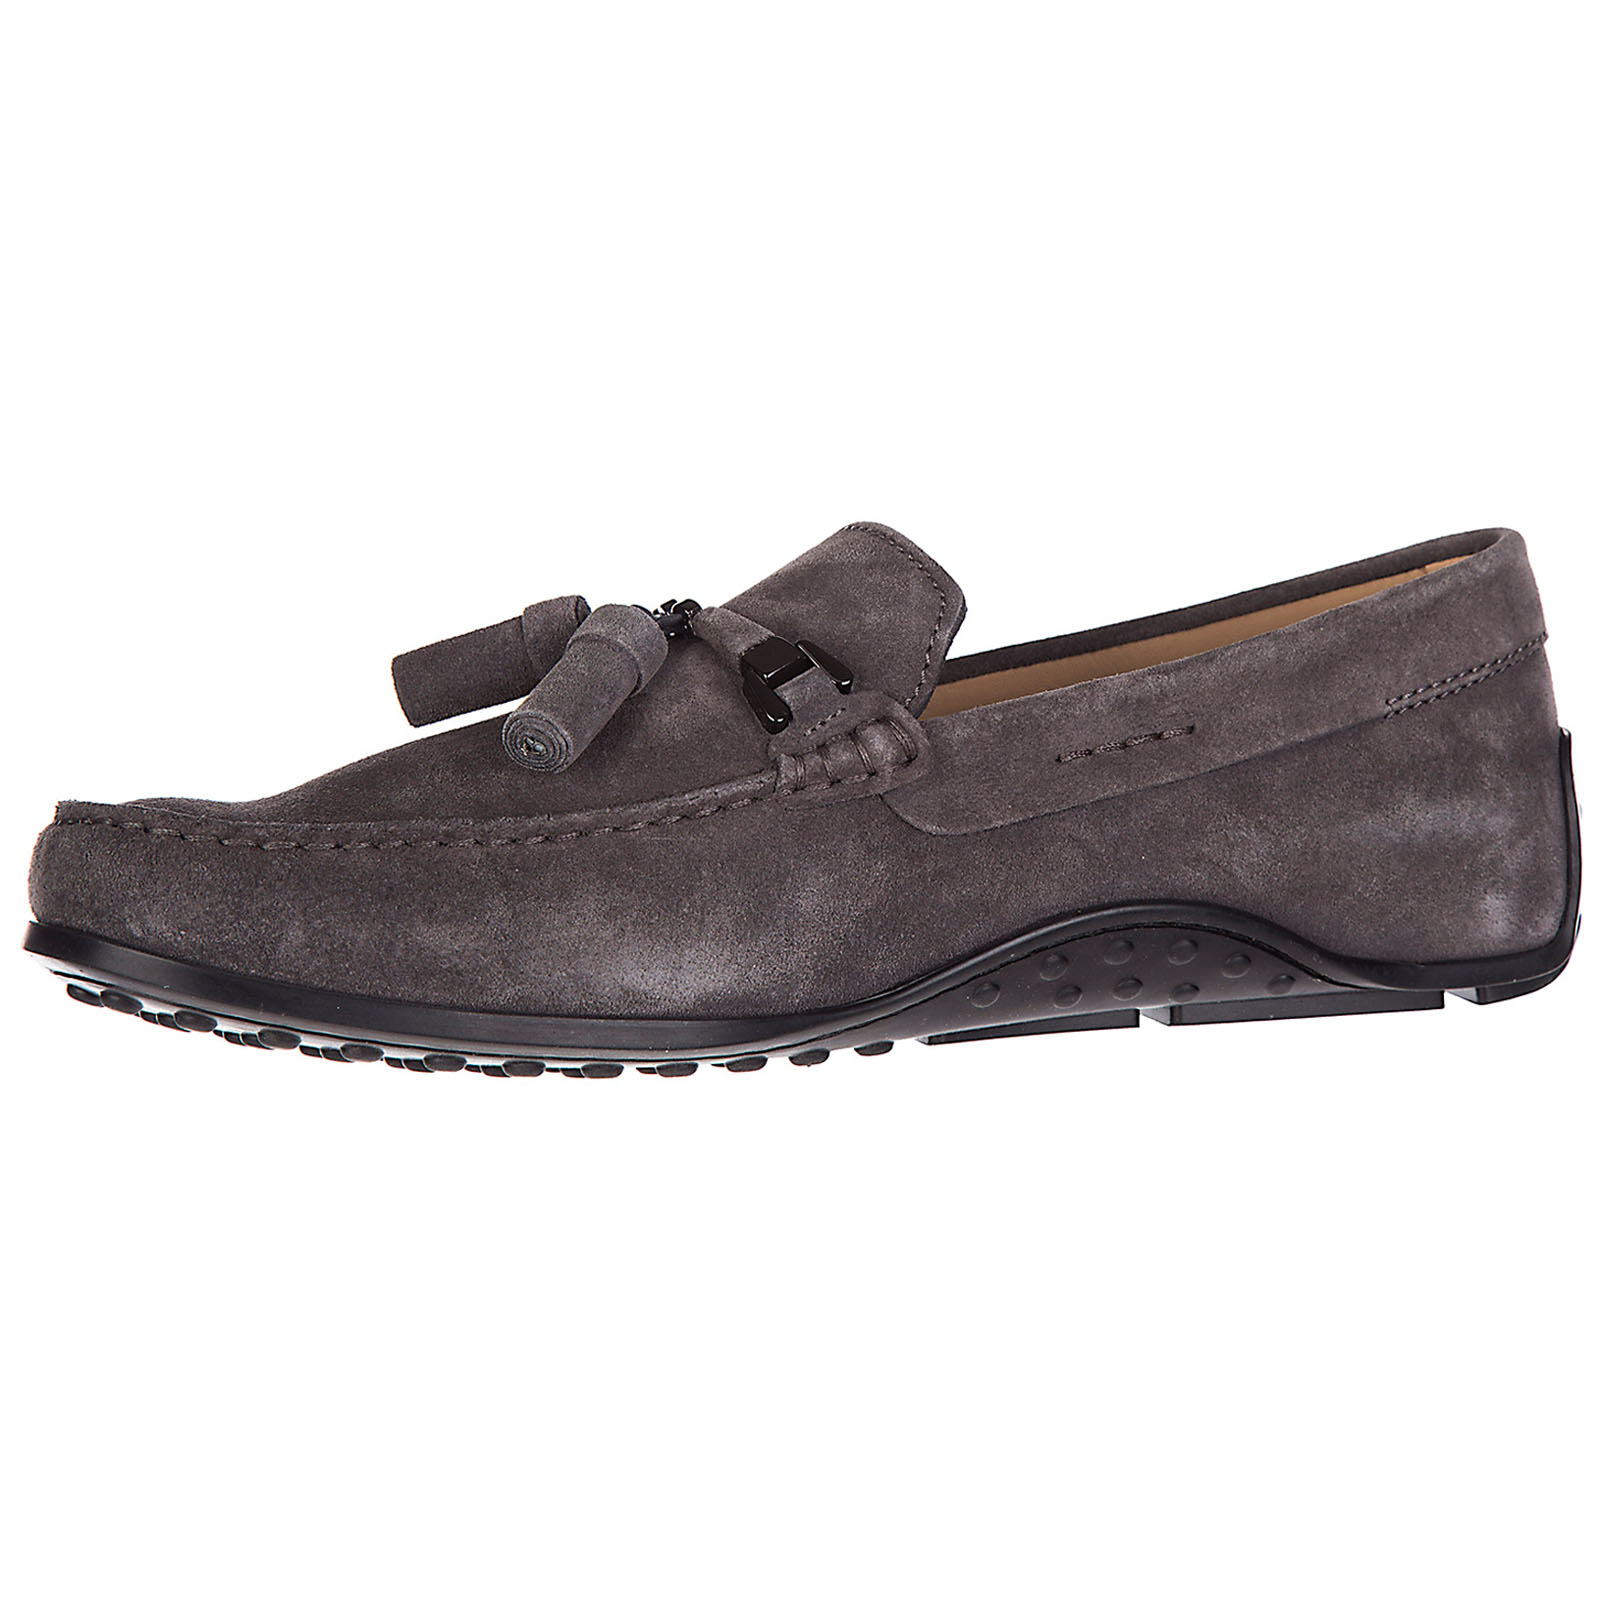 Men's suede loafers moccasins double t